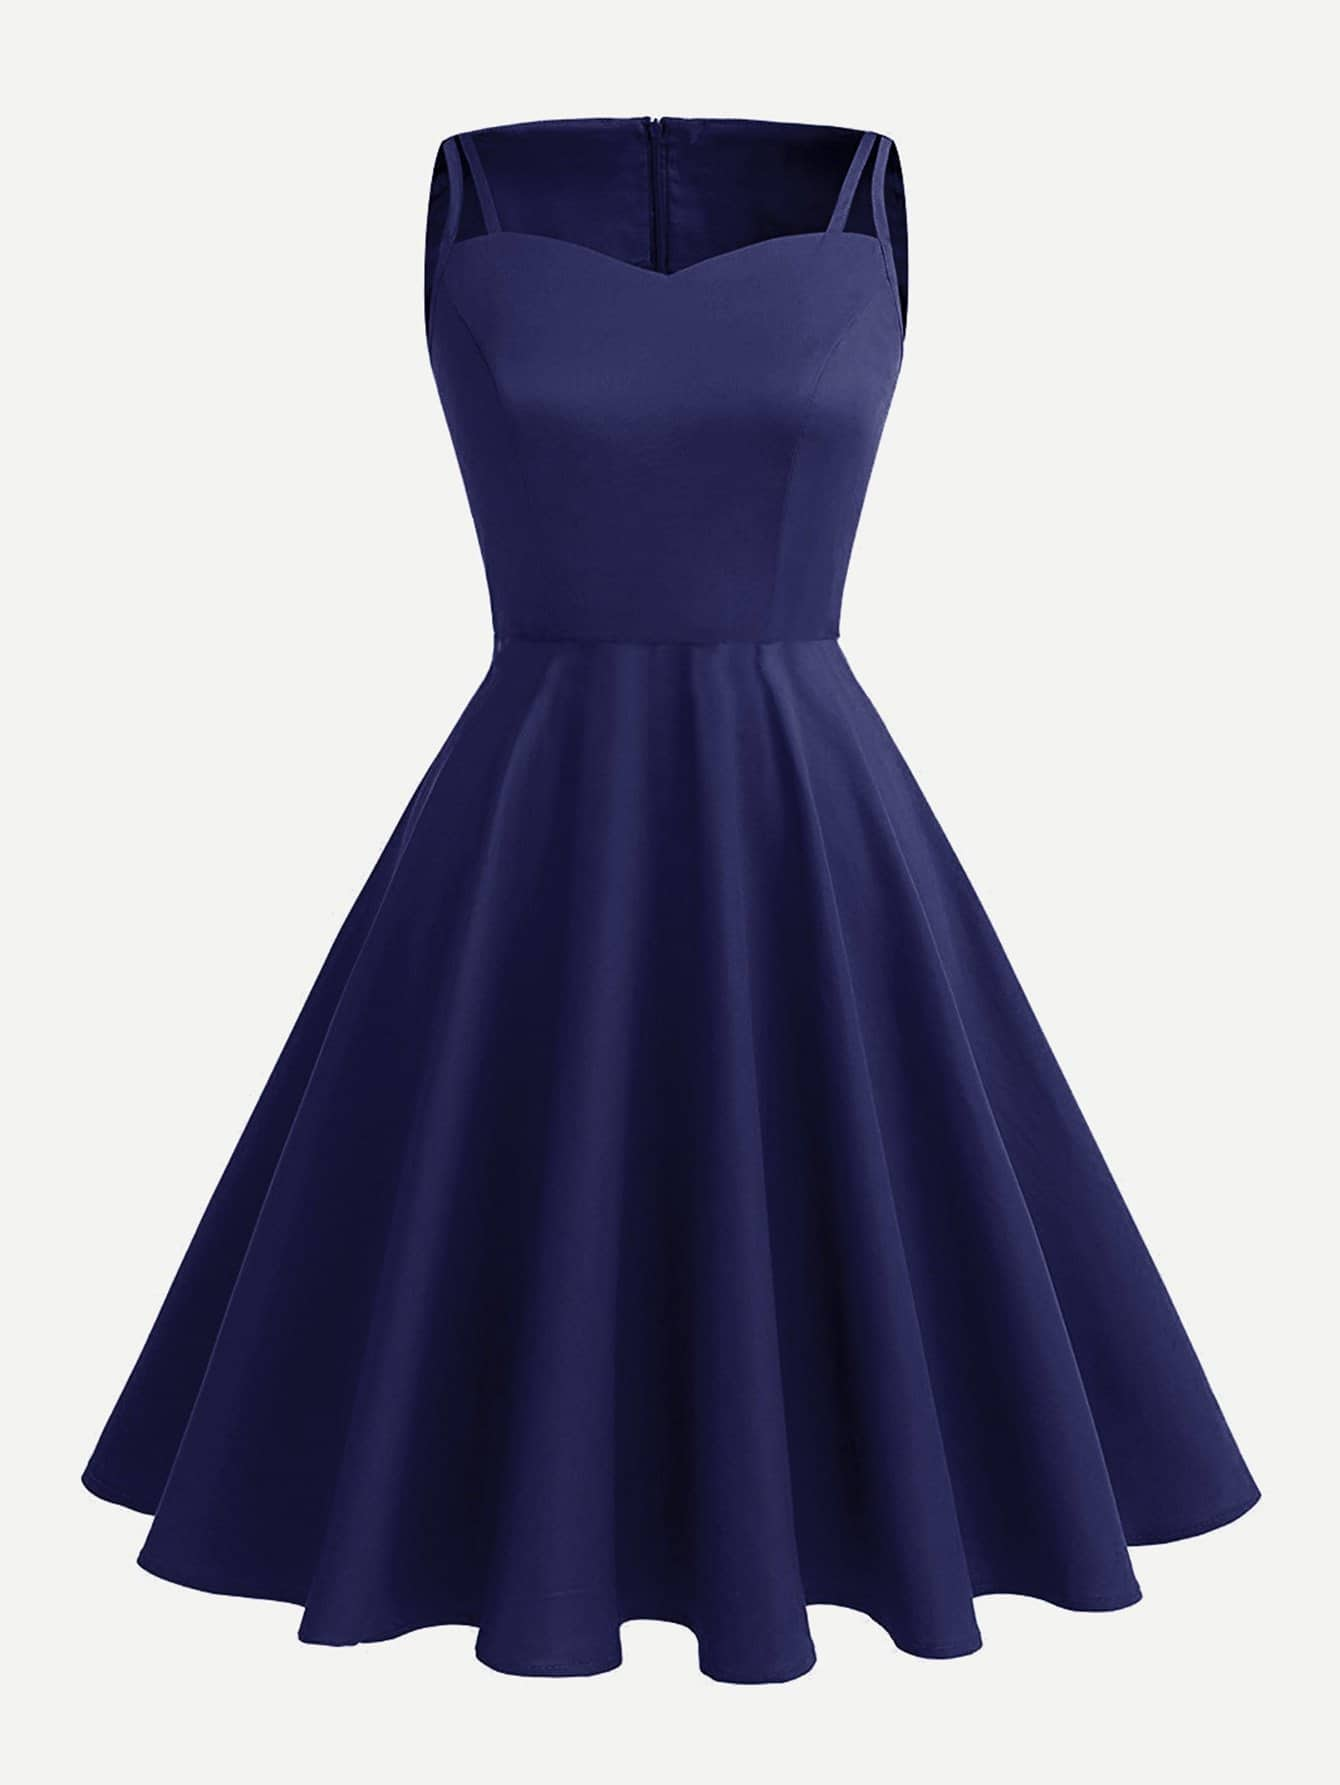 Cut Out Detail Swing Dress cut out detail fit and flared sleeveless dress